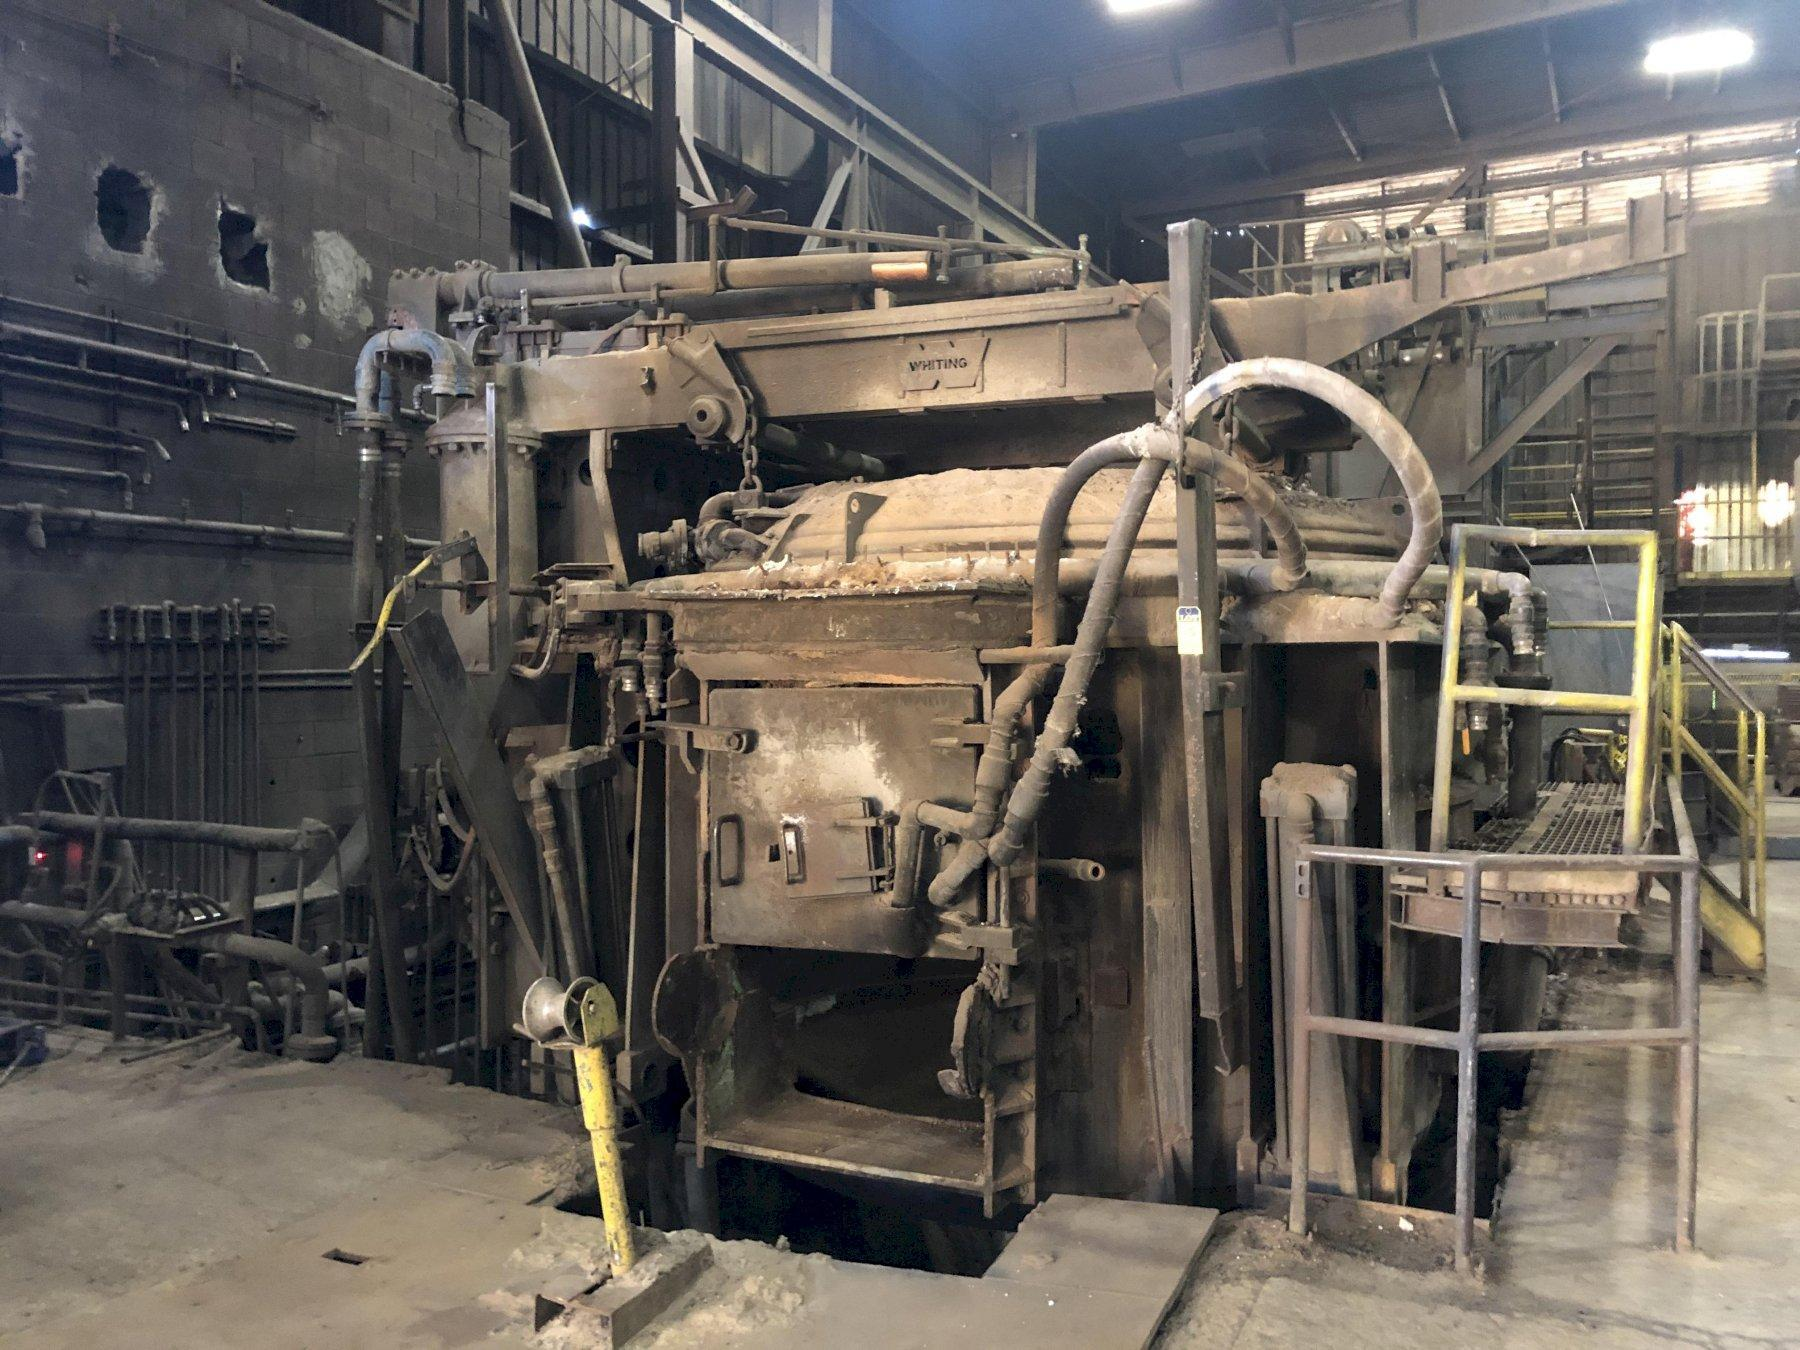 Whiting 17 ton arc Furnace, water cooled, roof, roof ring, side panels, slag door, buss, arms and electrode holders, some controls to be transferred